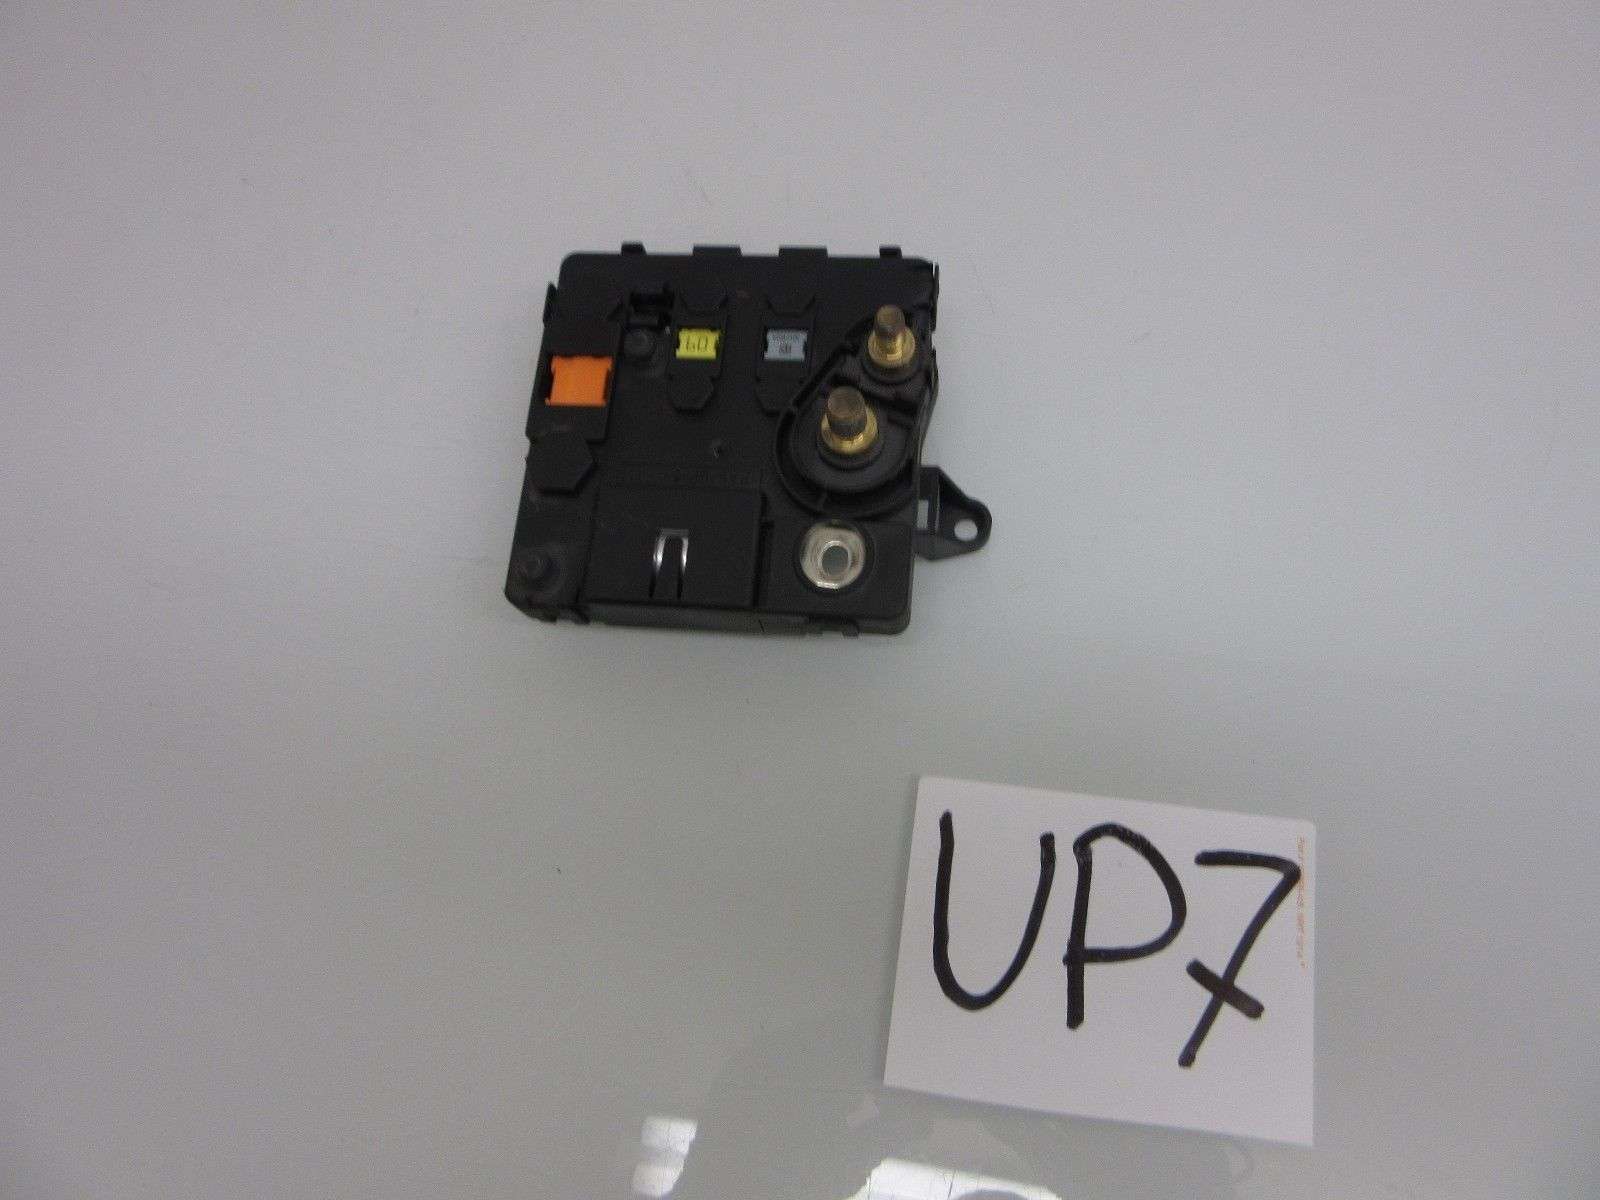 00 06 oem mercedes w220 battery fuse box cable connector 00 06 oem mercedes w220 battery fuse box cable connector 2205460641 2205460641